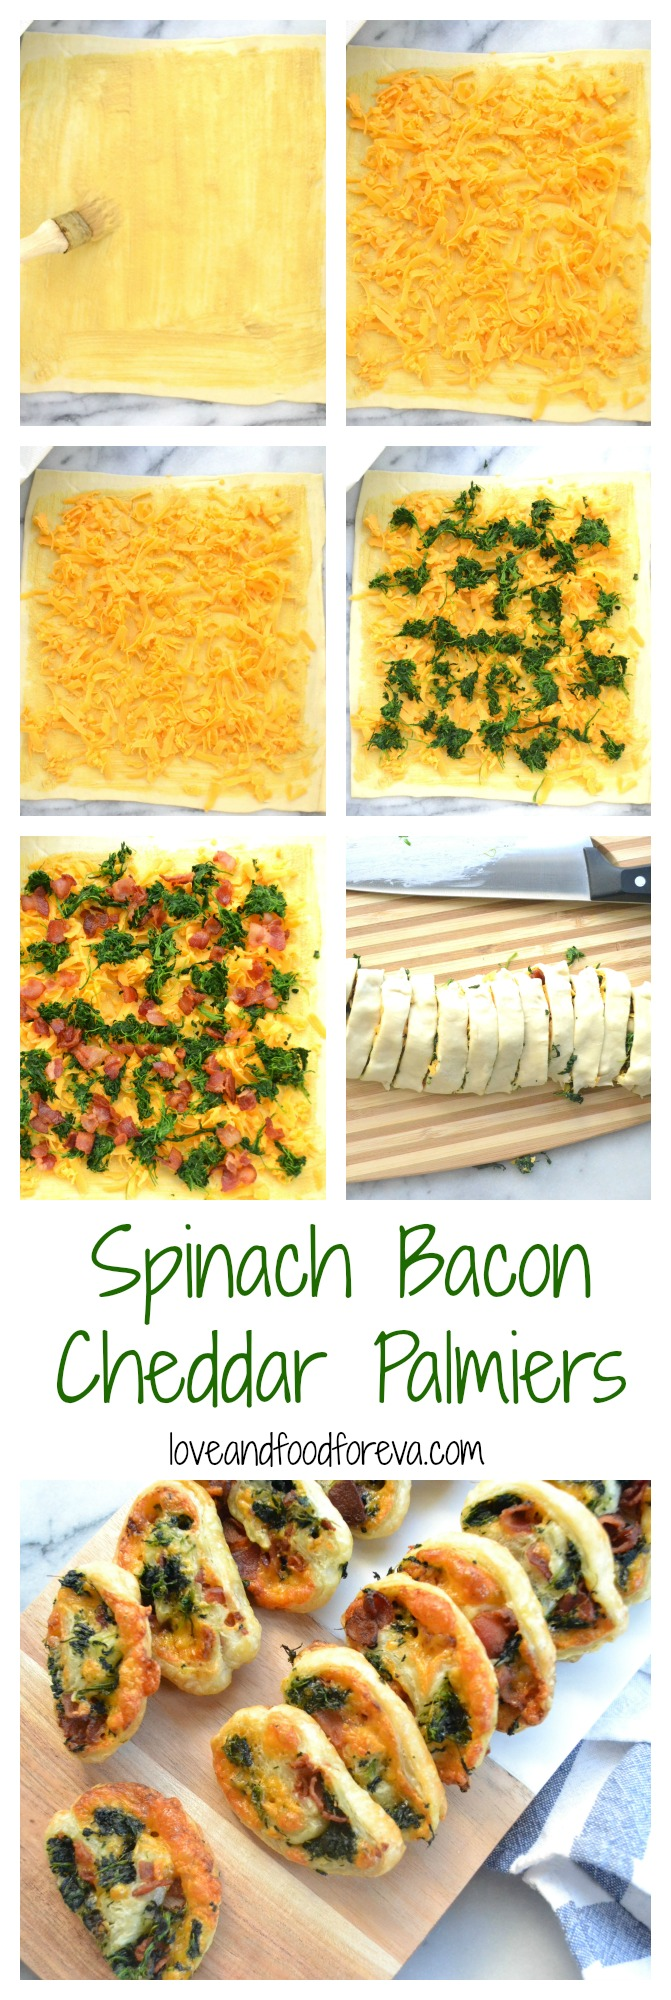 Spinach Bacon Cheddar Palmiers - the perfect bite size dish for cocktail parties!